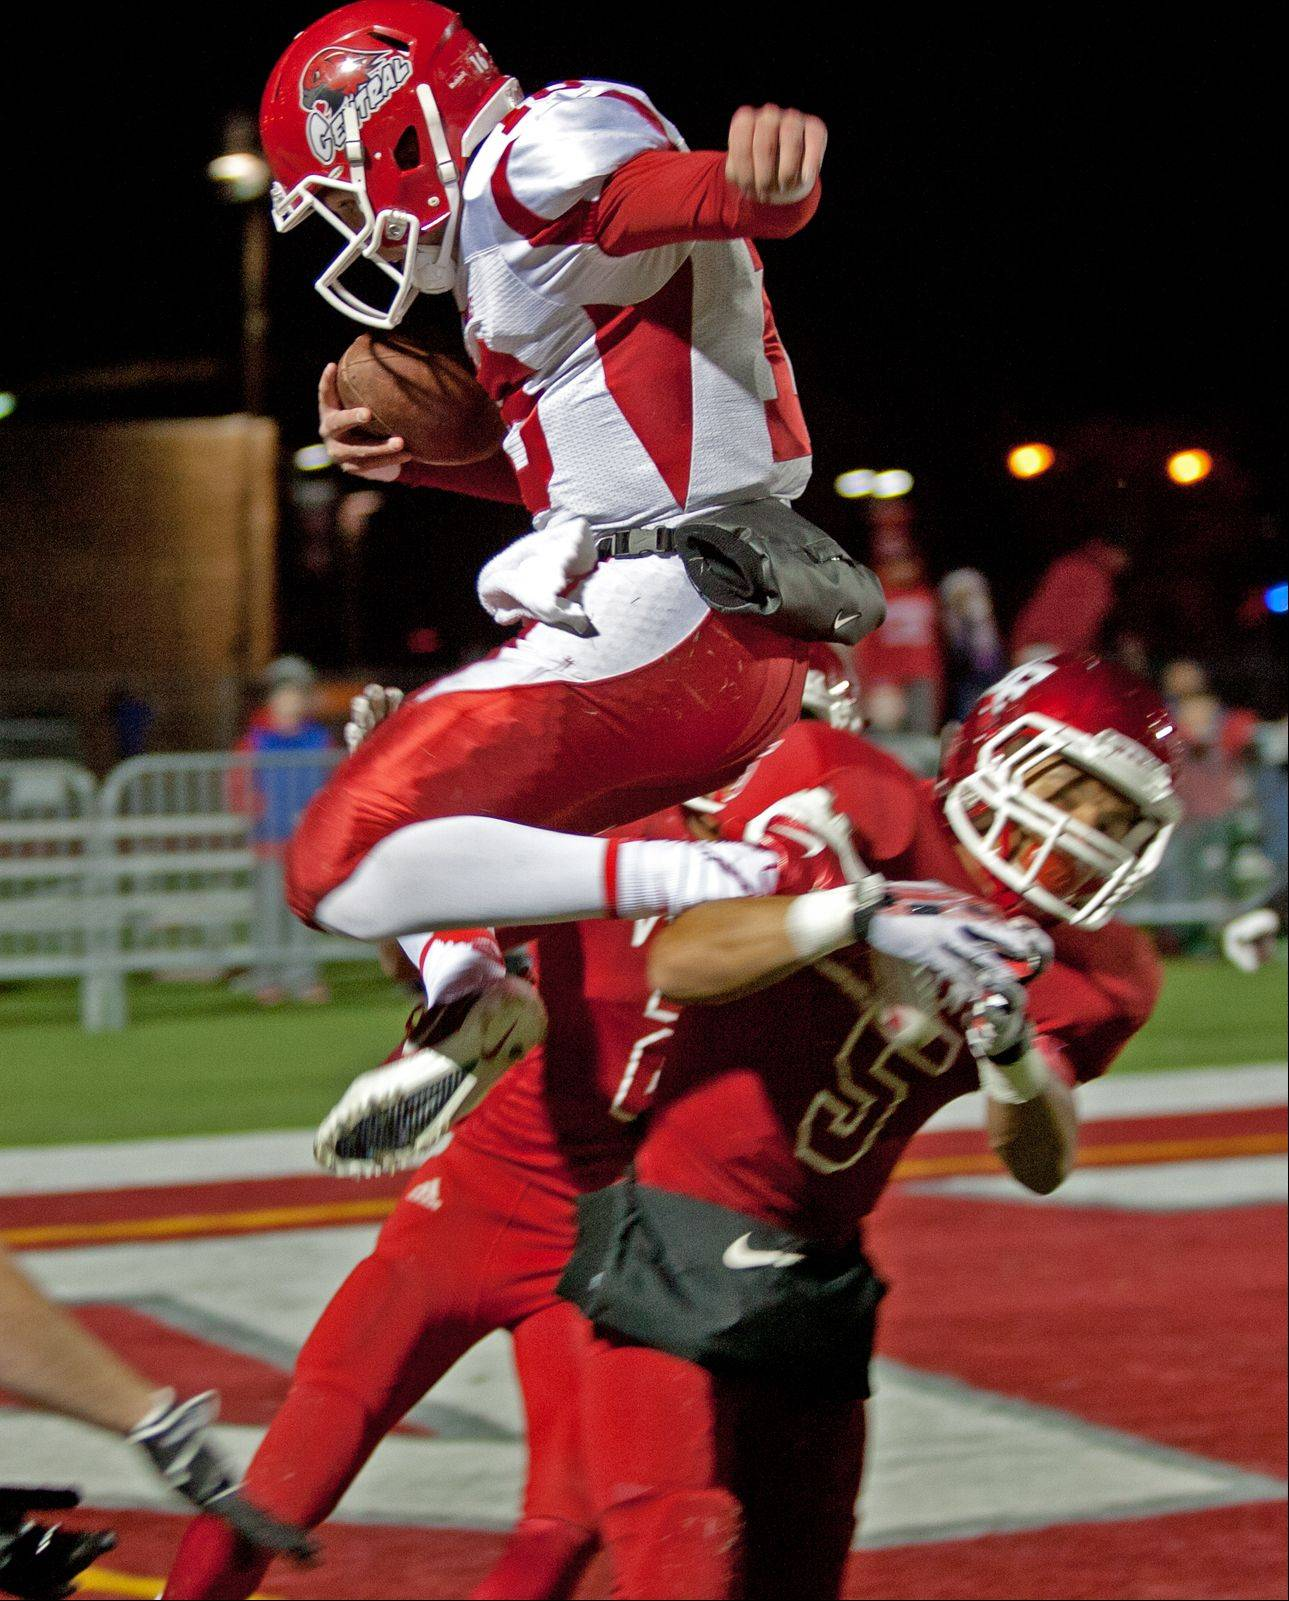 Naperville Central quarterback Jake Kolbe is called on a personal foul, late in the fourth quarter.